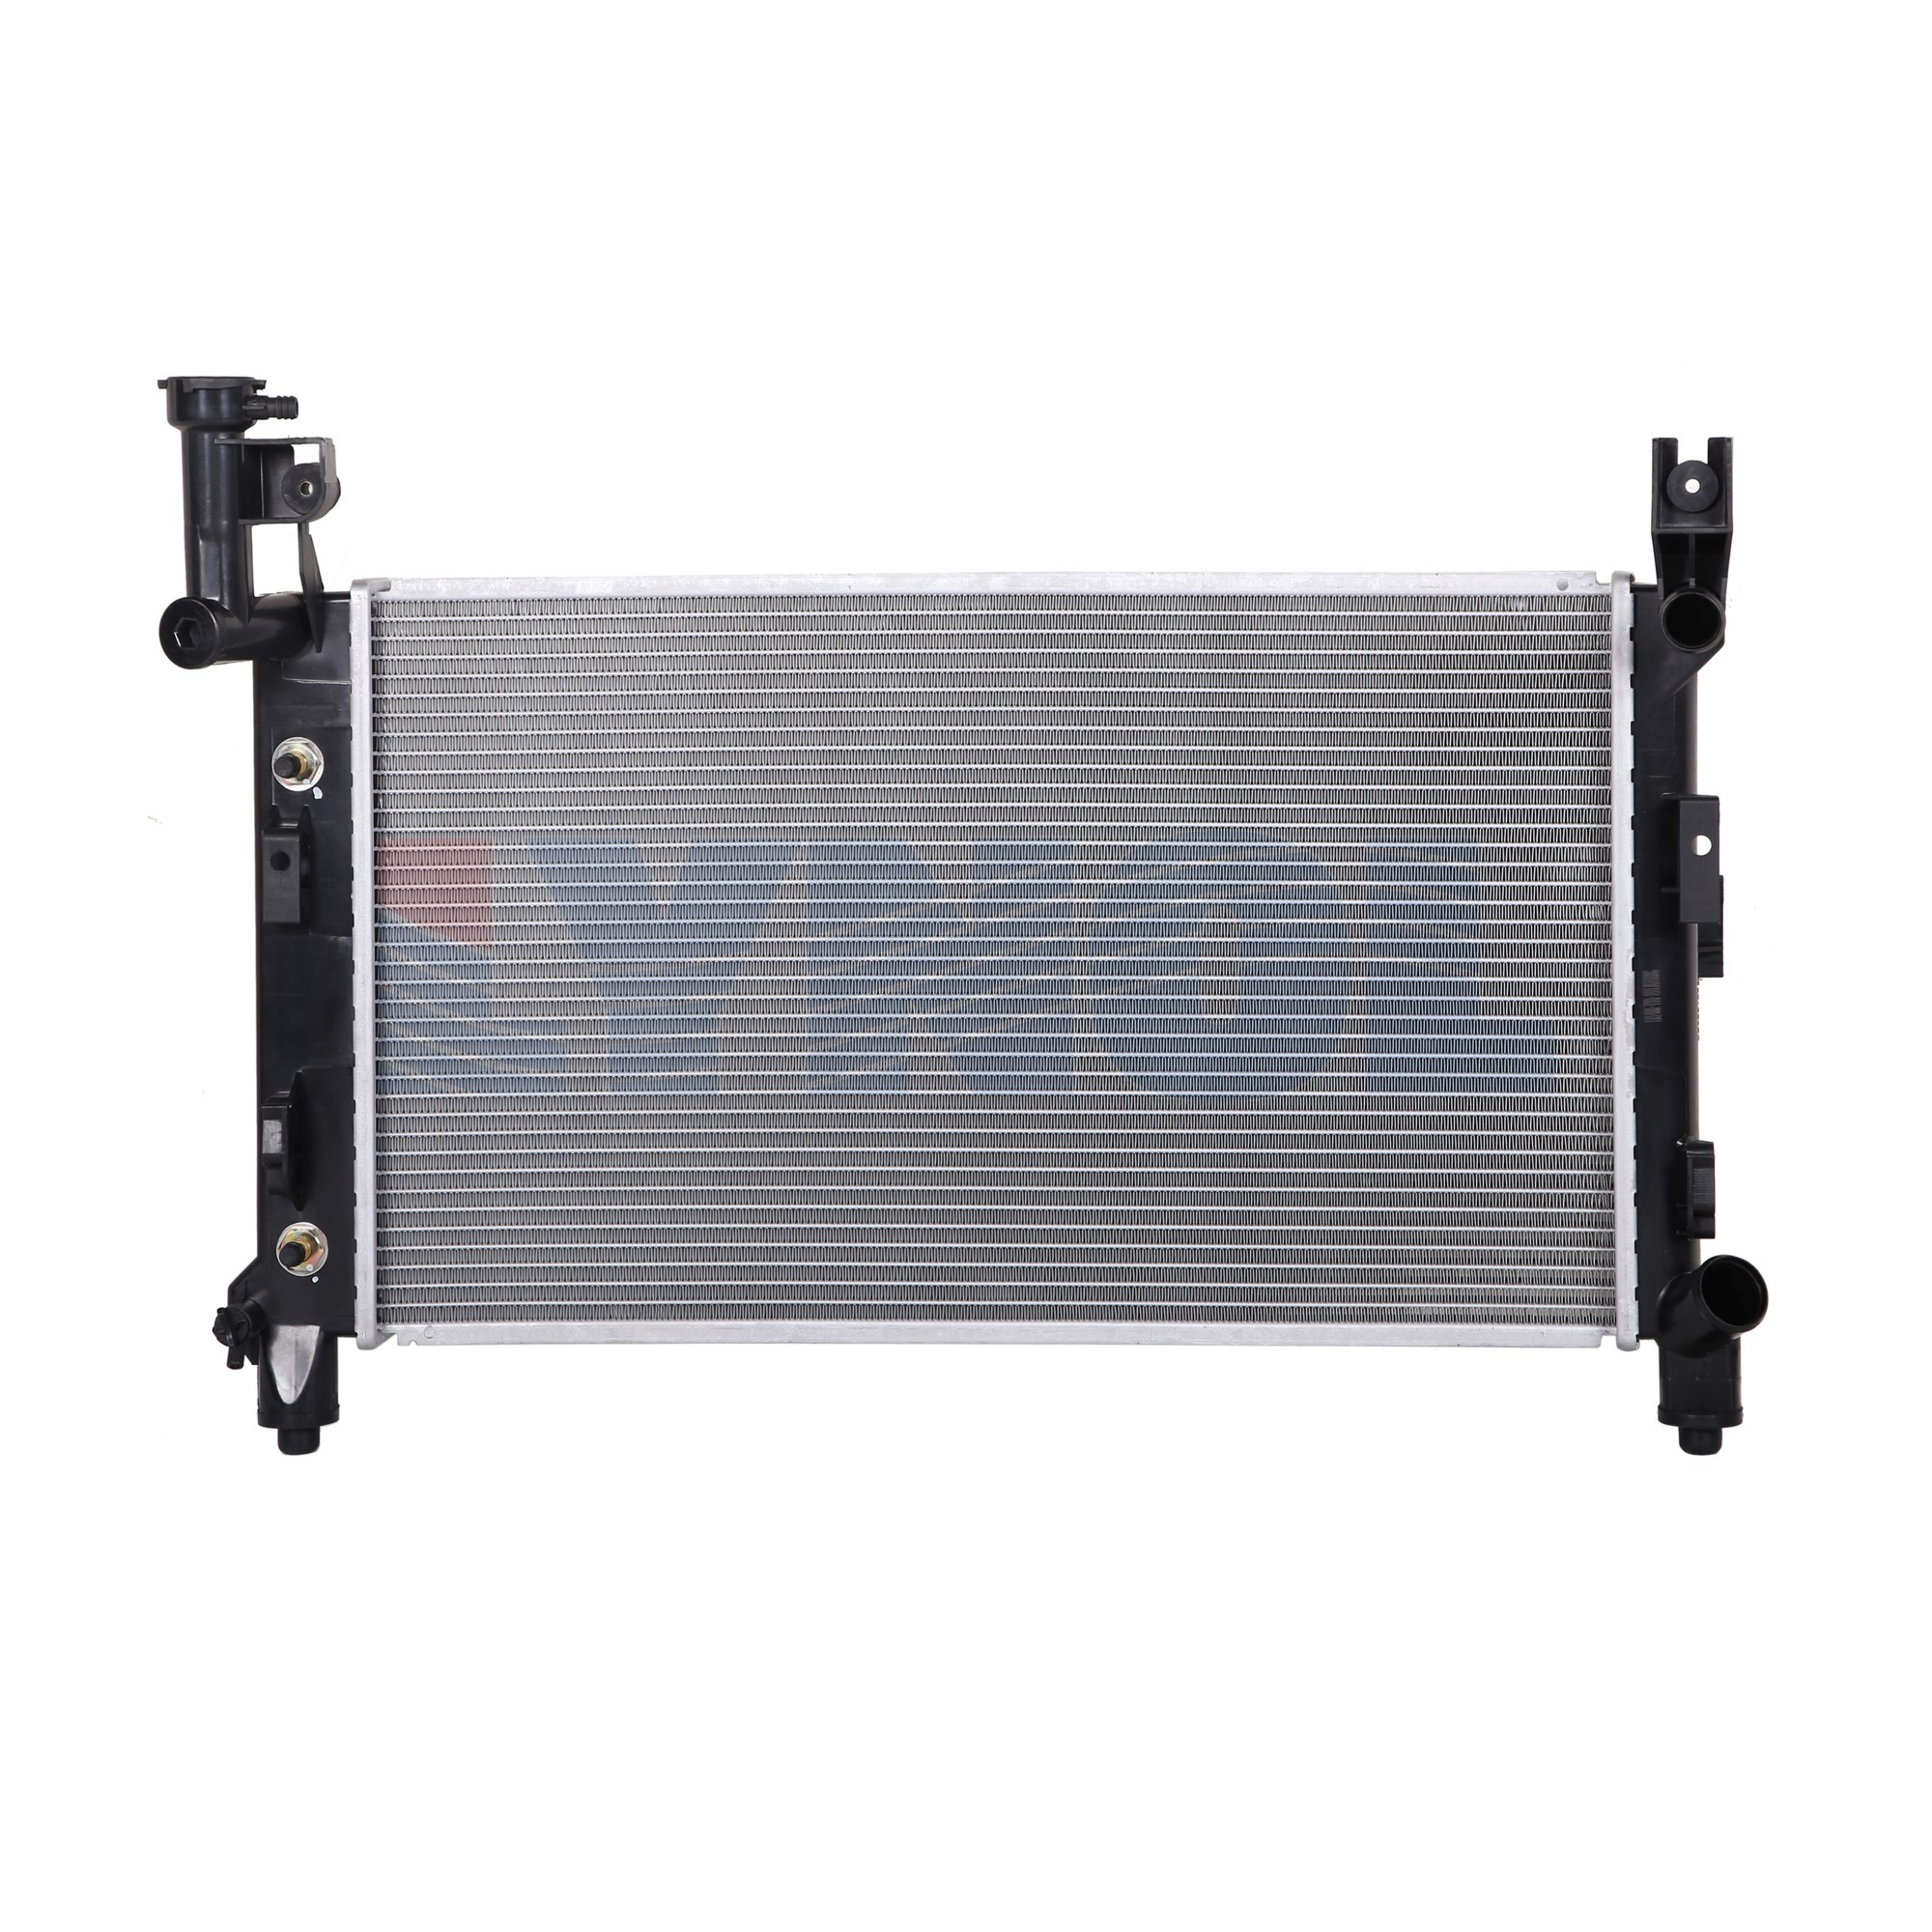 LR1400 - RADIATOR  - Radiator for 93-95 Chrysler Town & Country, Dodge Caravan / Grand Caravan, Plymouth Voyager / Grand Voyager